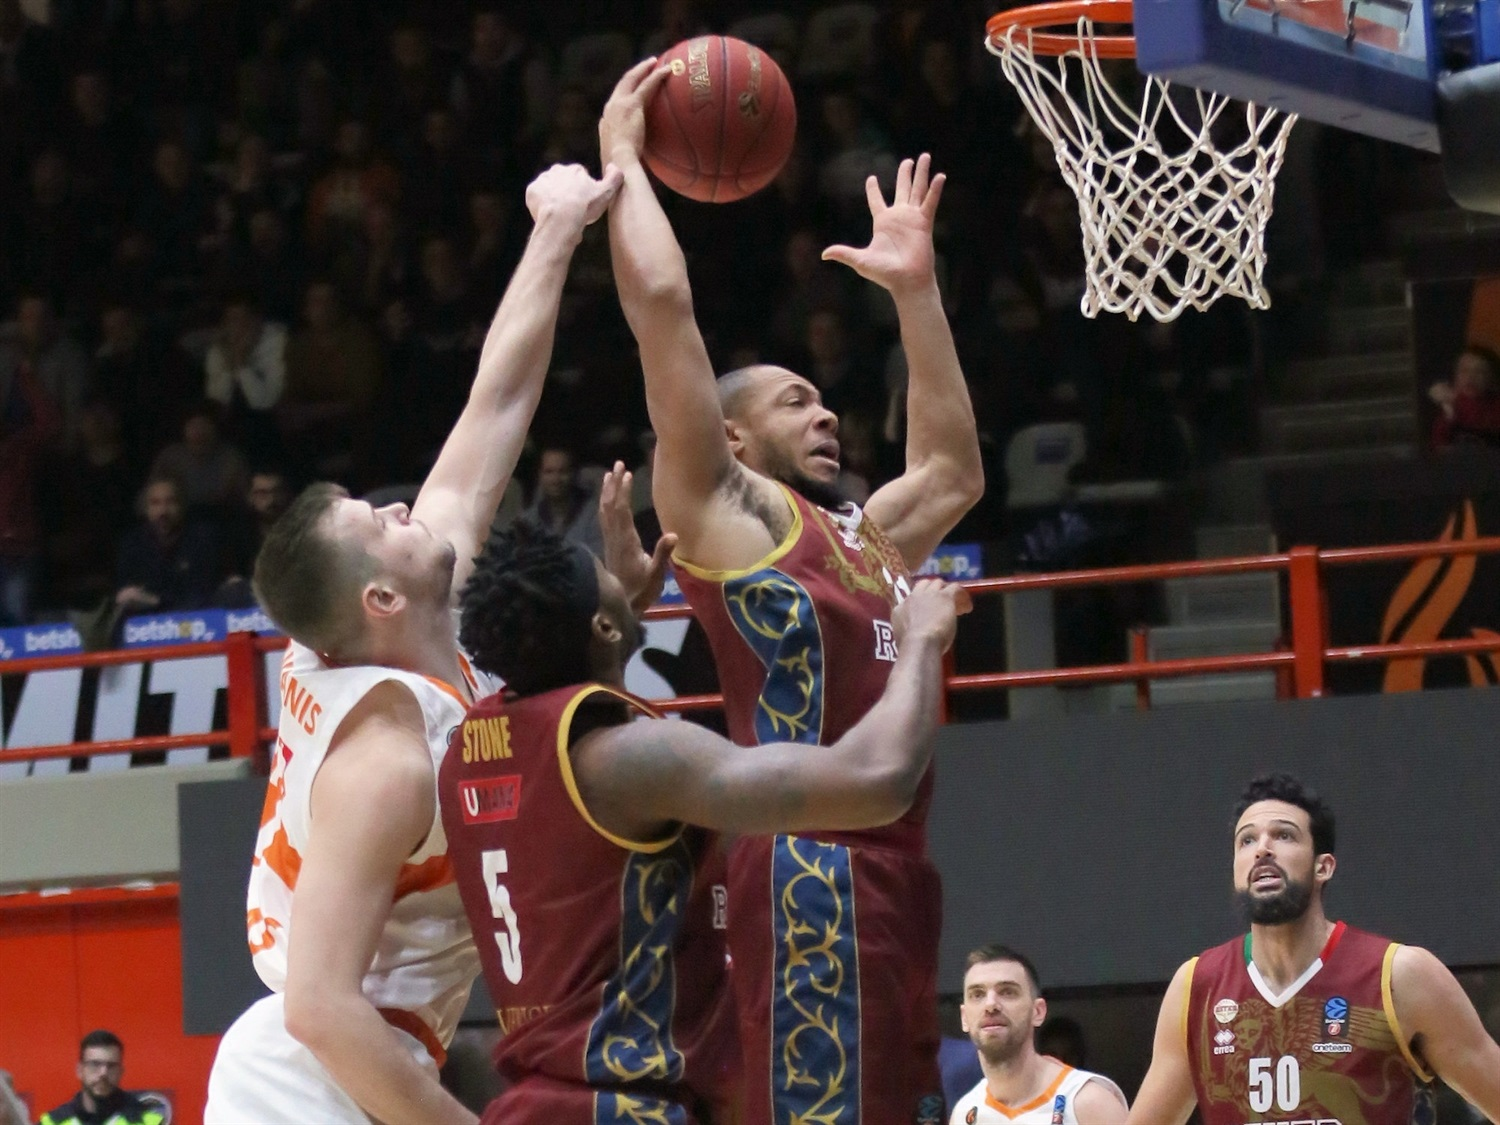 Jeremy Chappell - Umana Reyer Venice (photo Promitheas) - EC19